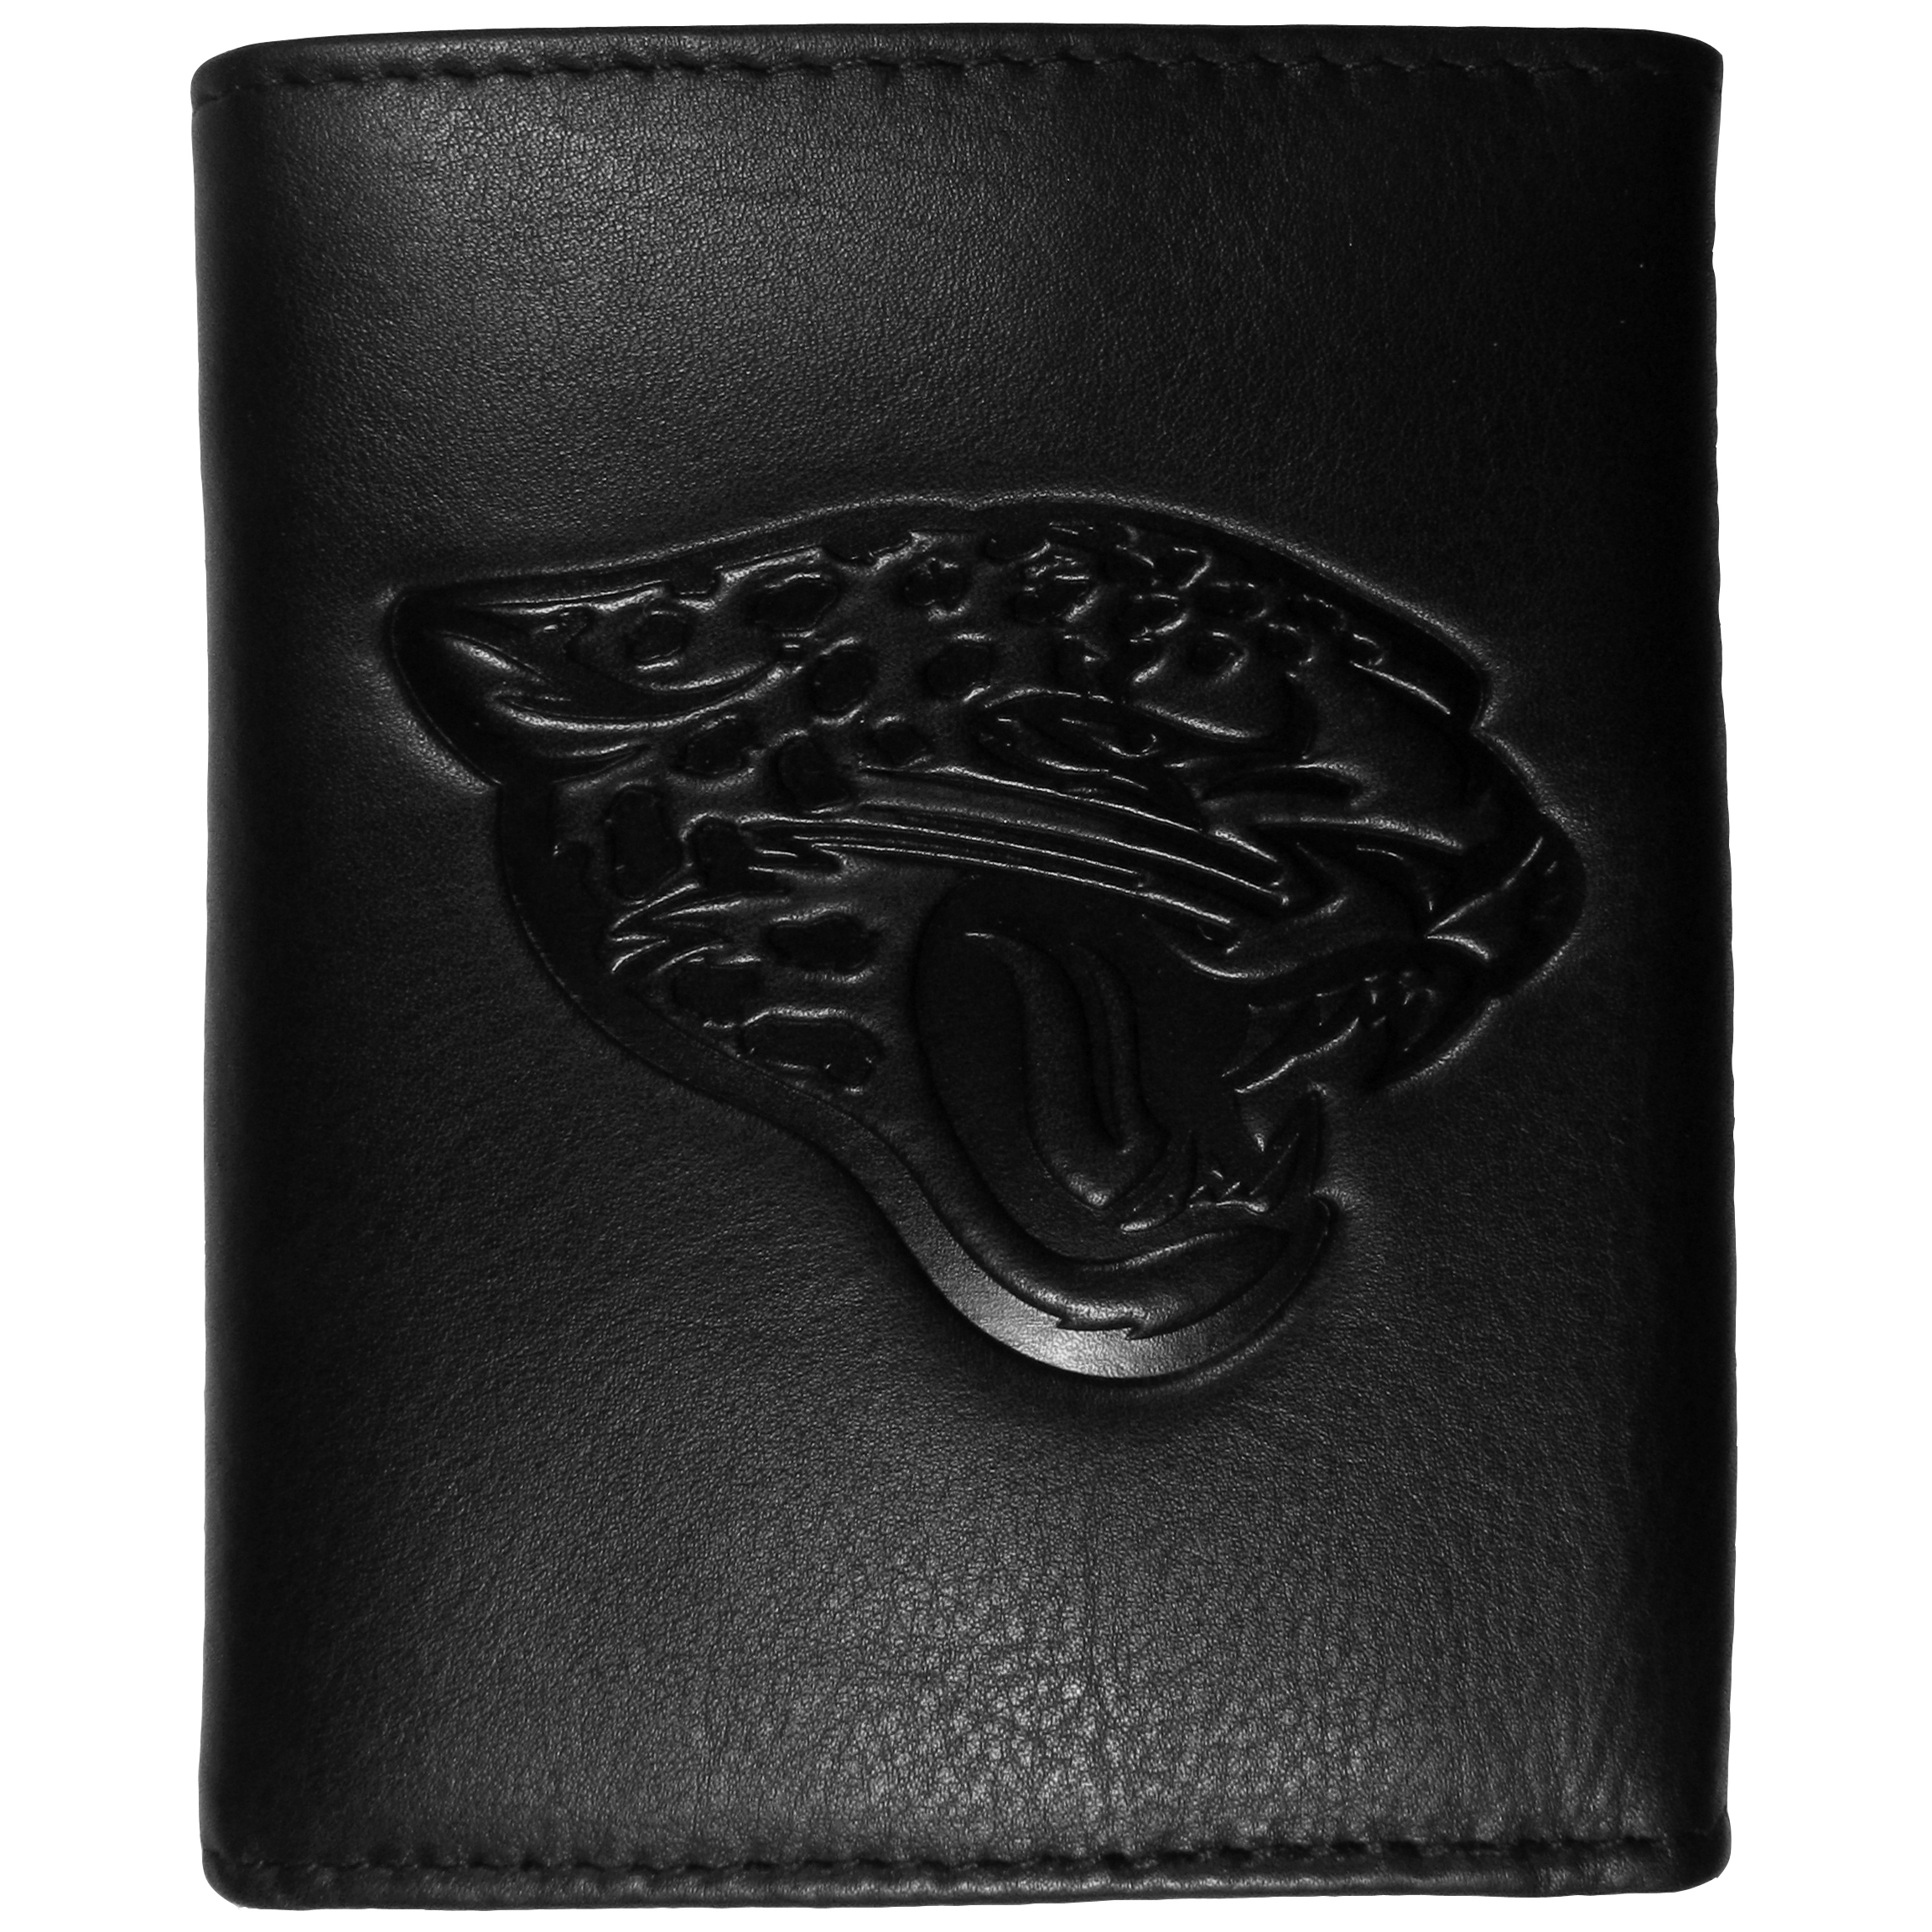 Jacksonville Jaguars Embossed Leather Tri-fold Wallet - This stylish leather wallet is made of high quality leather with a supple feel and classic look. The front of the tri-fold style wallet has a deeply embossed Jacksonville Jaguars logo. The billfold is packed with features that will allow to keep organized, lots of credit card slots, windowed ID slot, large pockets for bills and a removable sleeve with extra slots for even more storage. This is a must-have men's fashion accessory that would make any fan very proud to own.